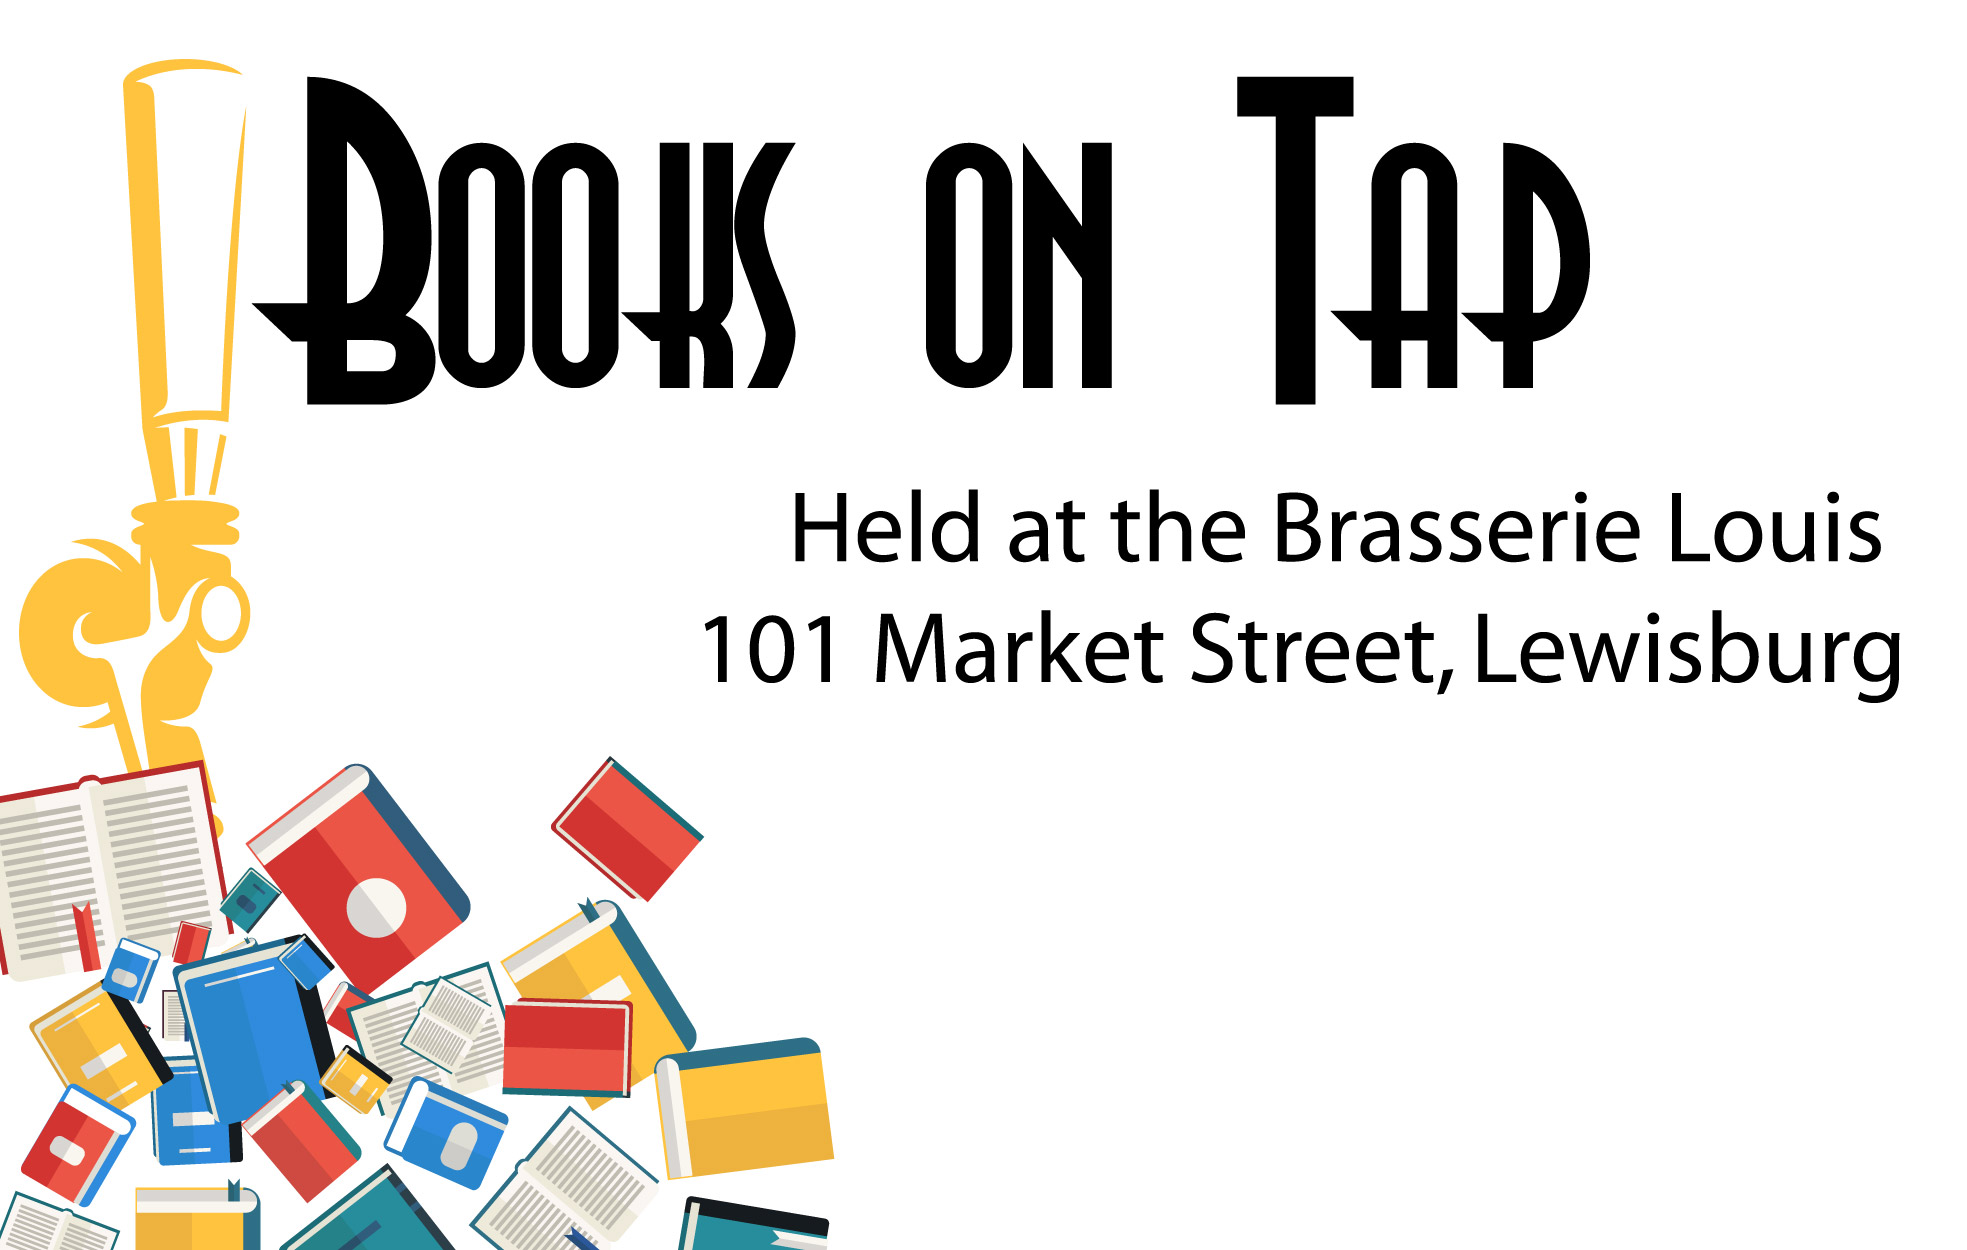 Books on Tap at the Brasserie Louis